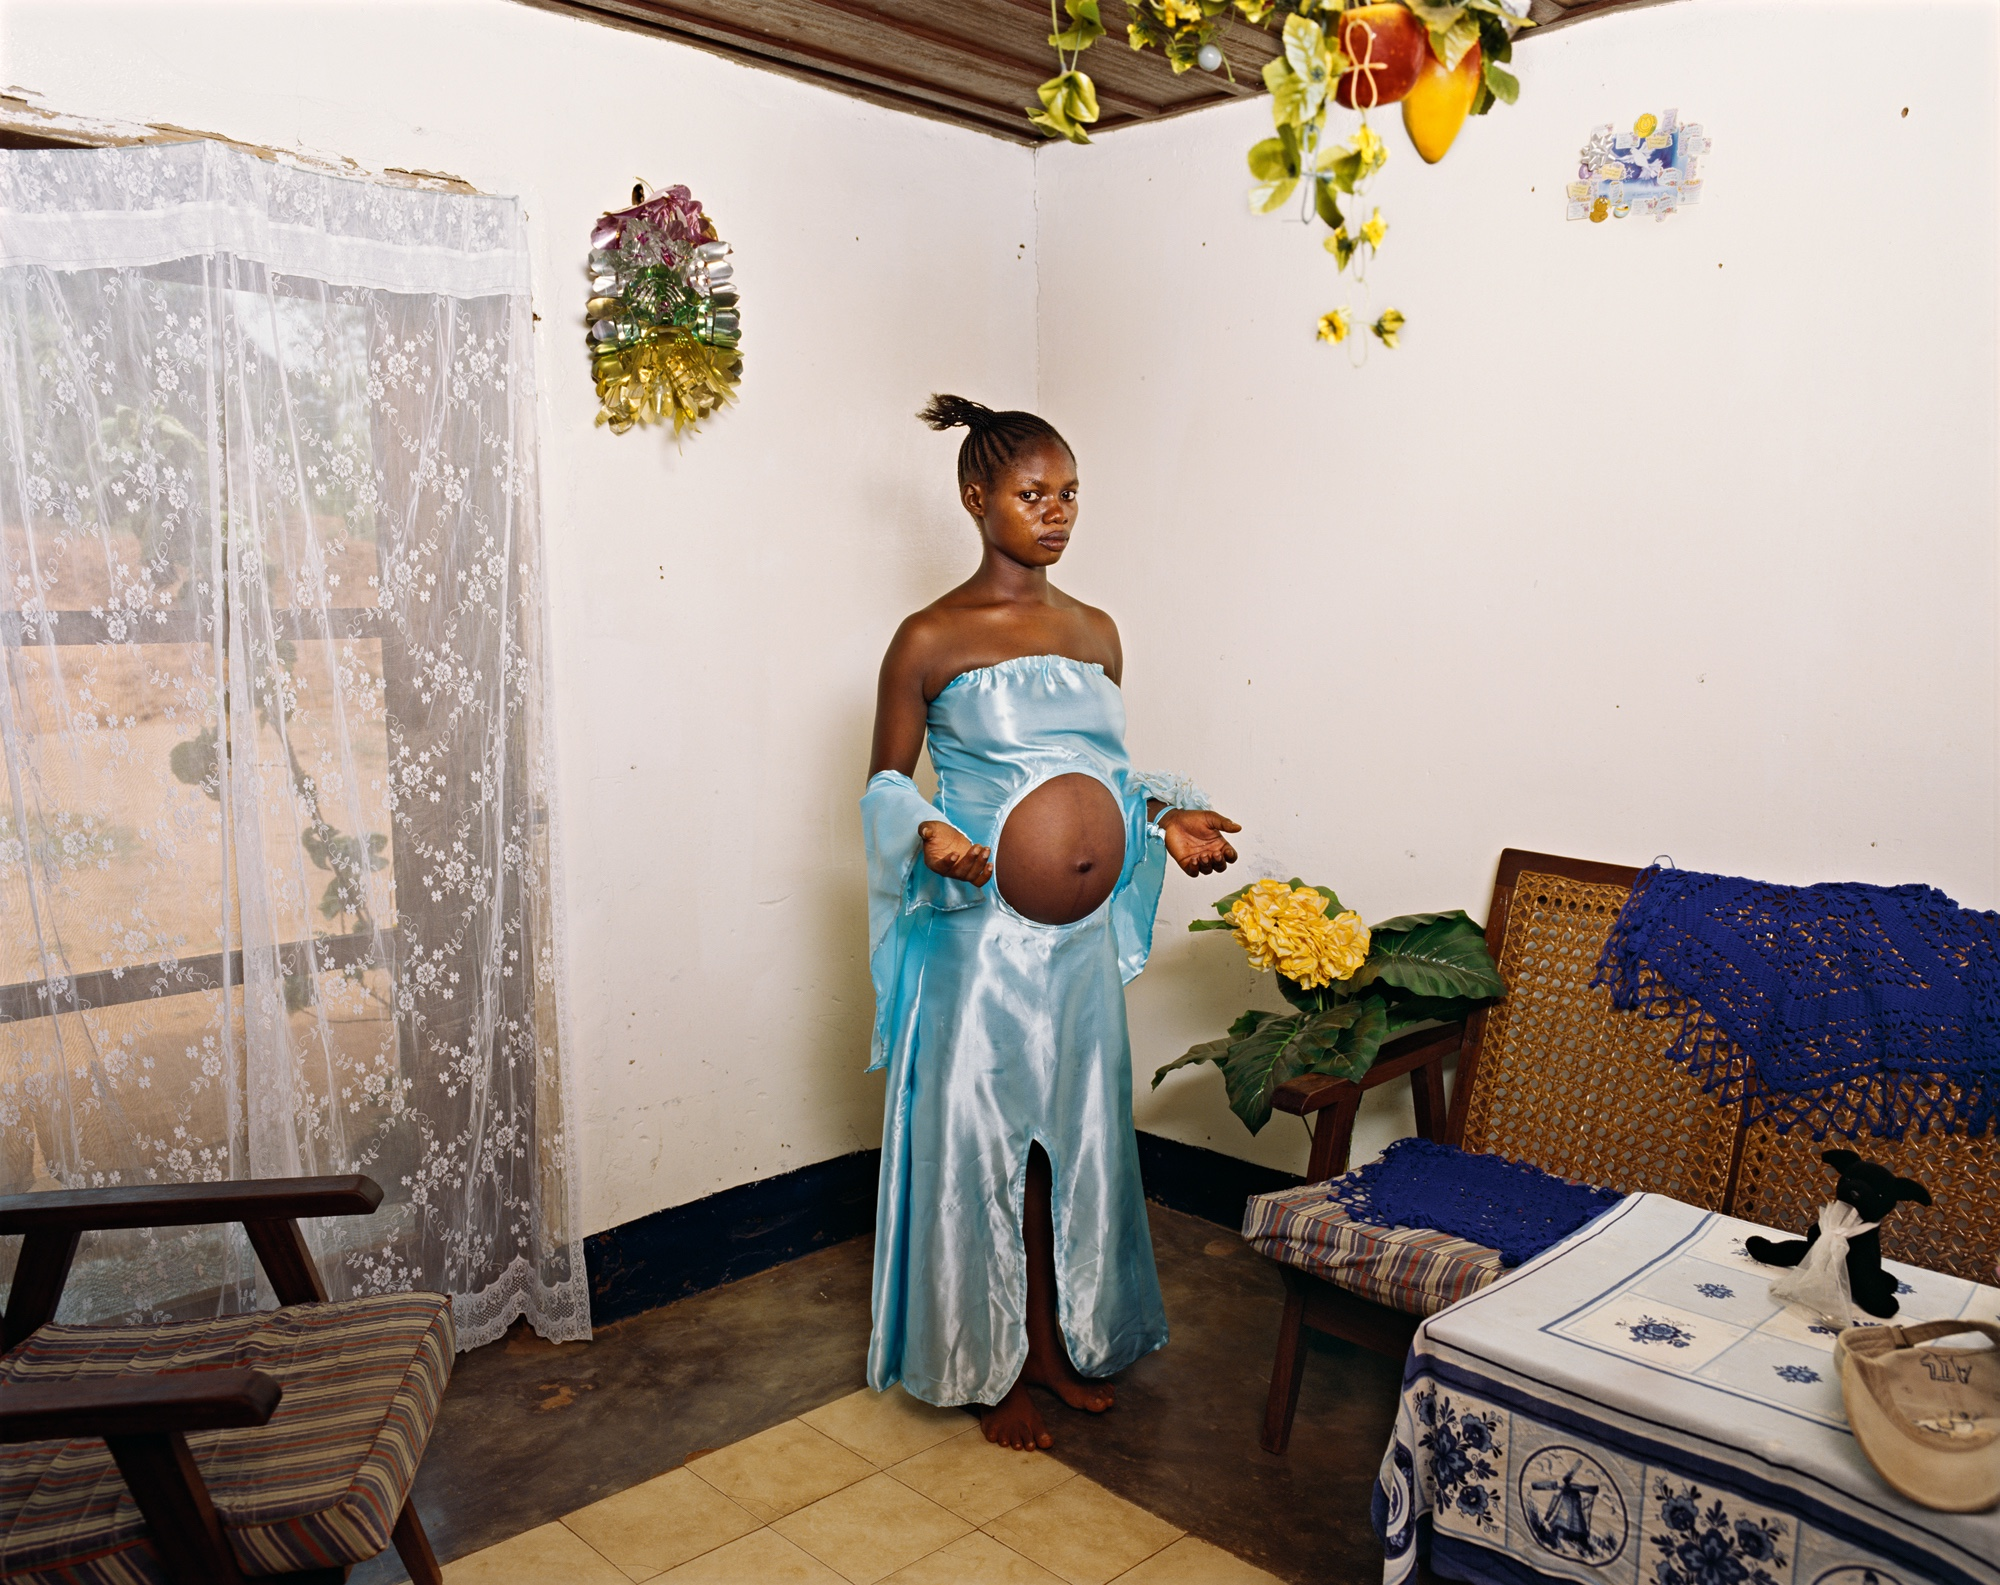 Deana Lawson's mythical portraits of the black experience